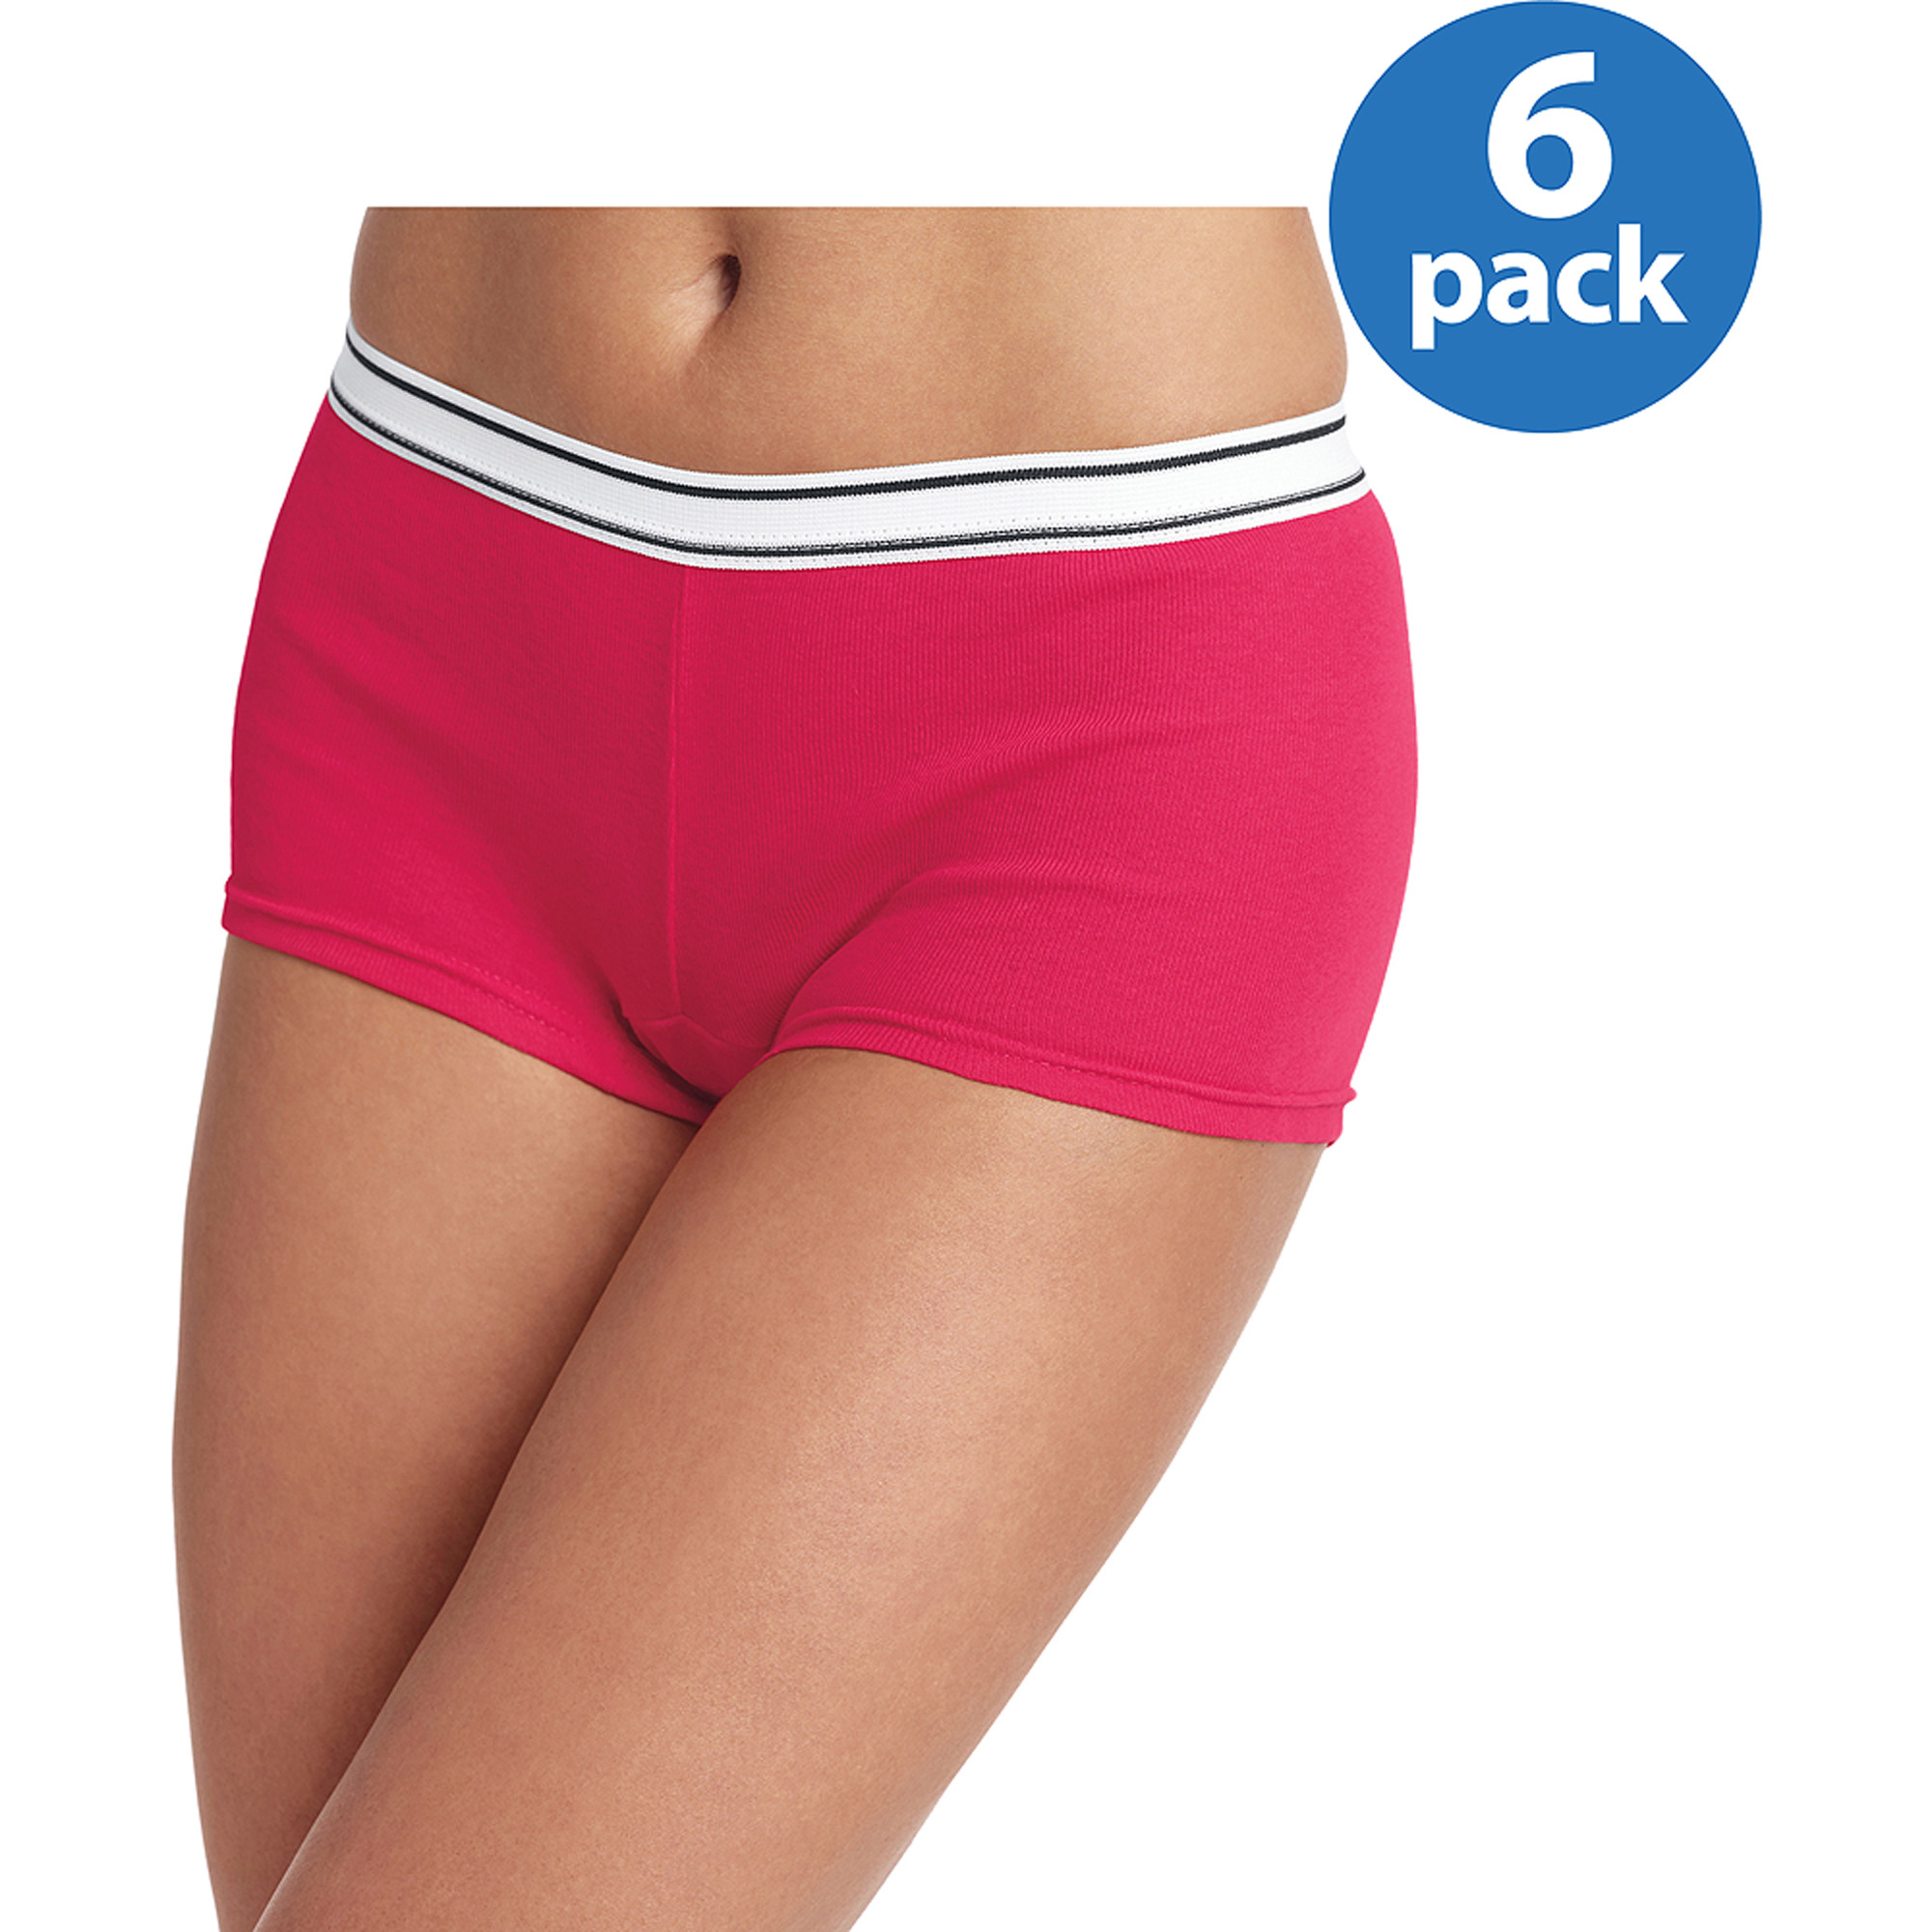 Hanes Women's Cotton Sporty Boyshort Panties, 6-Pack